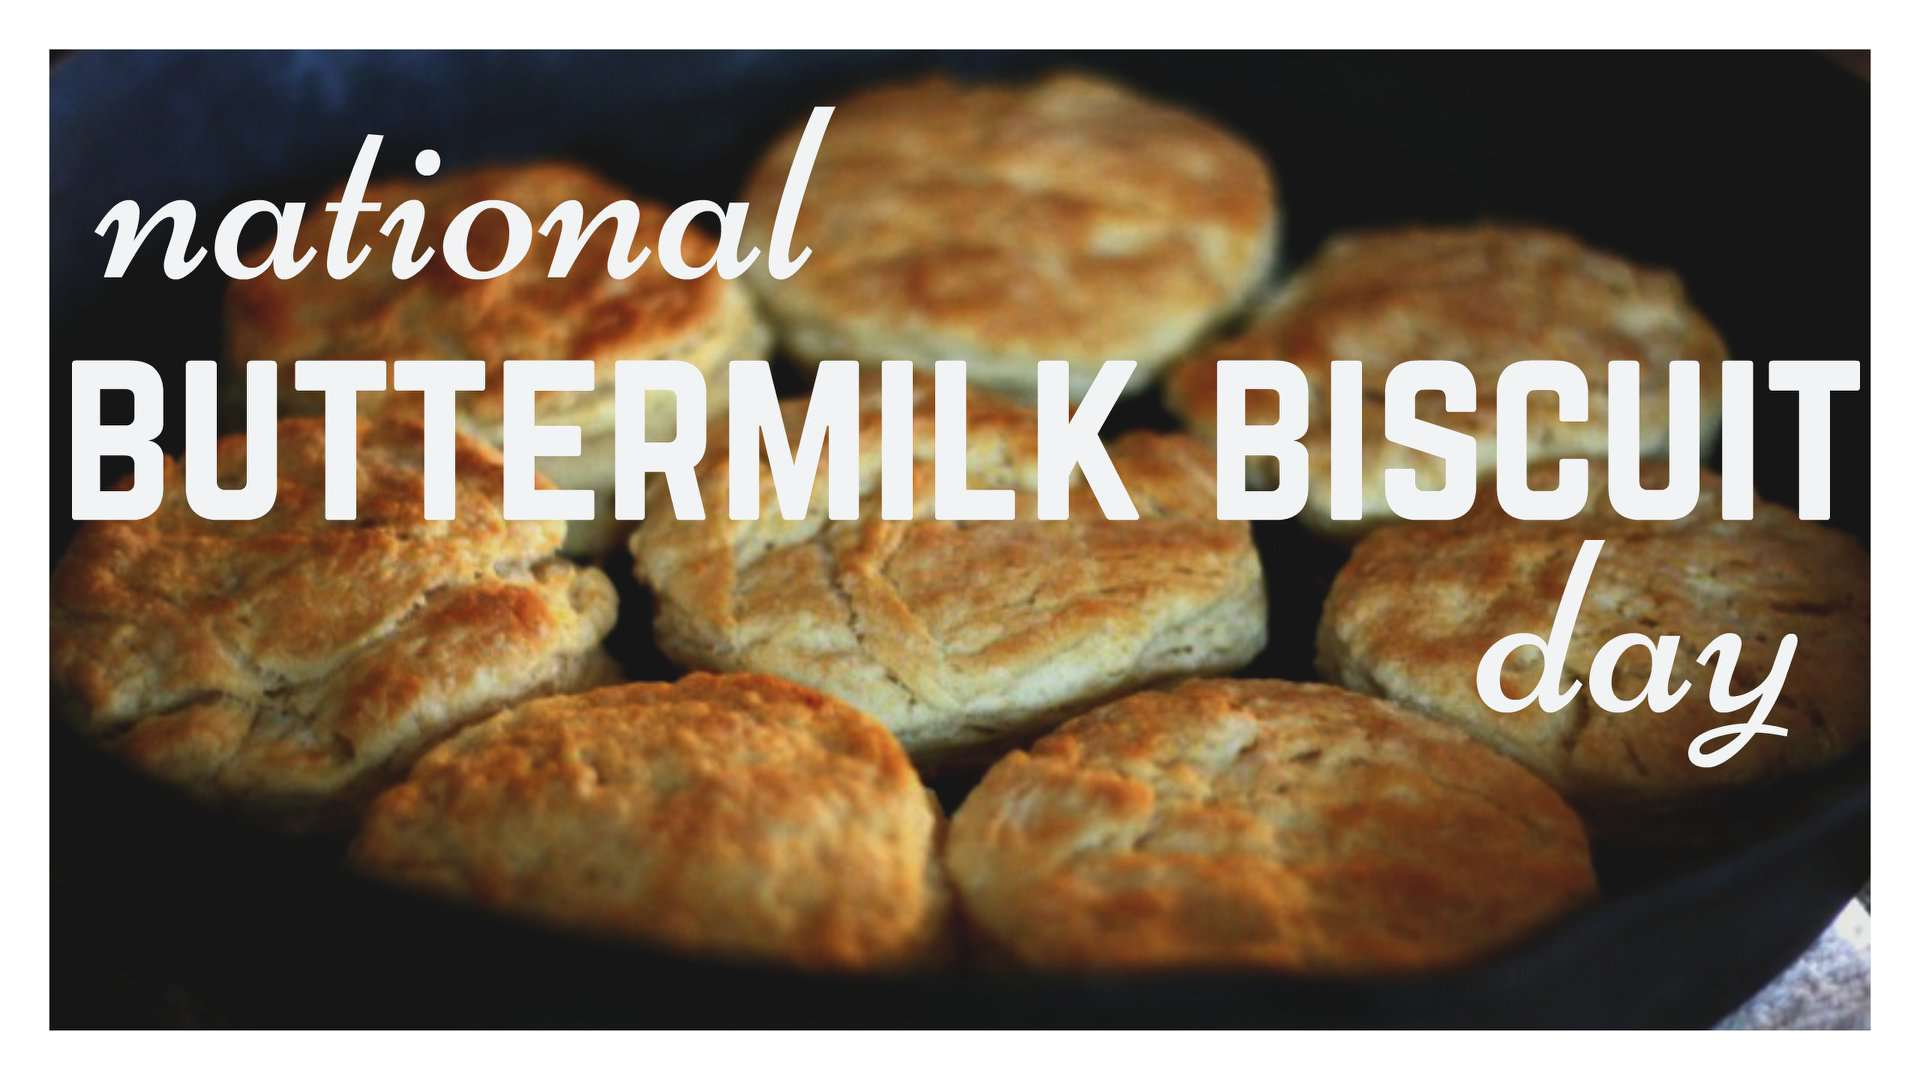 National Buttermilk Biscuit Day Wishes Images download